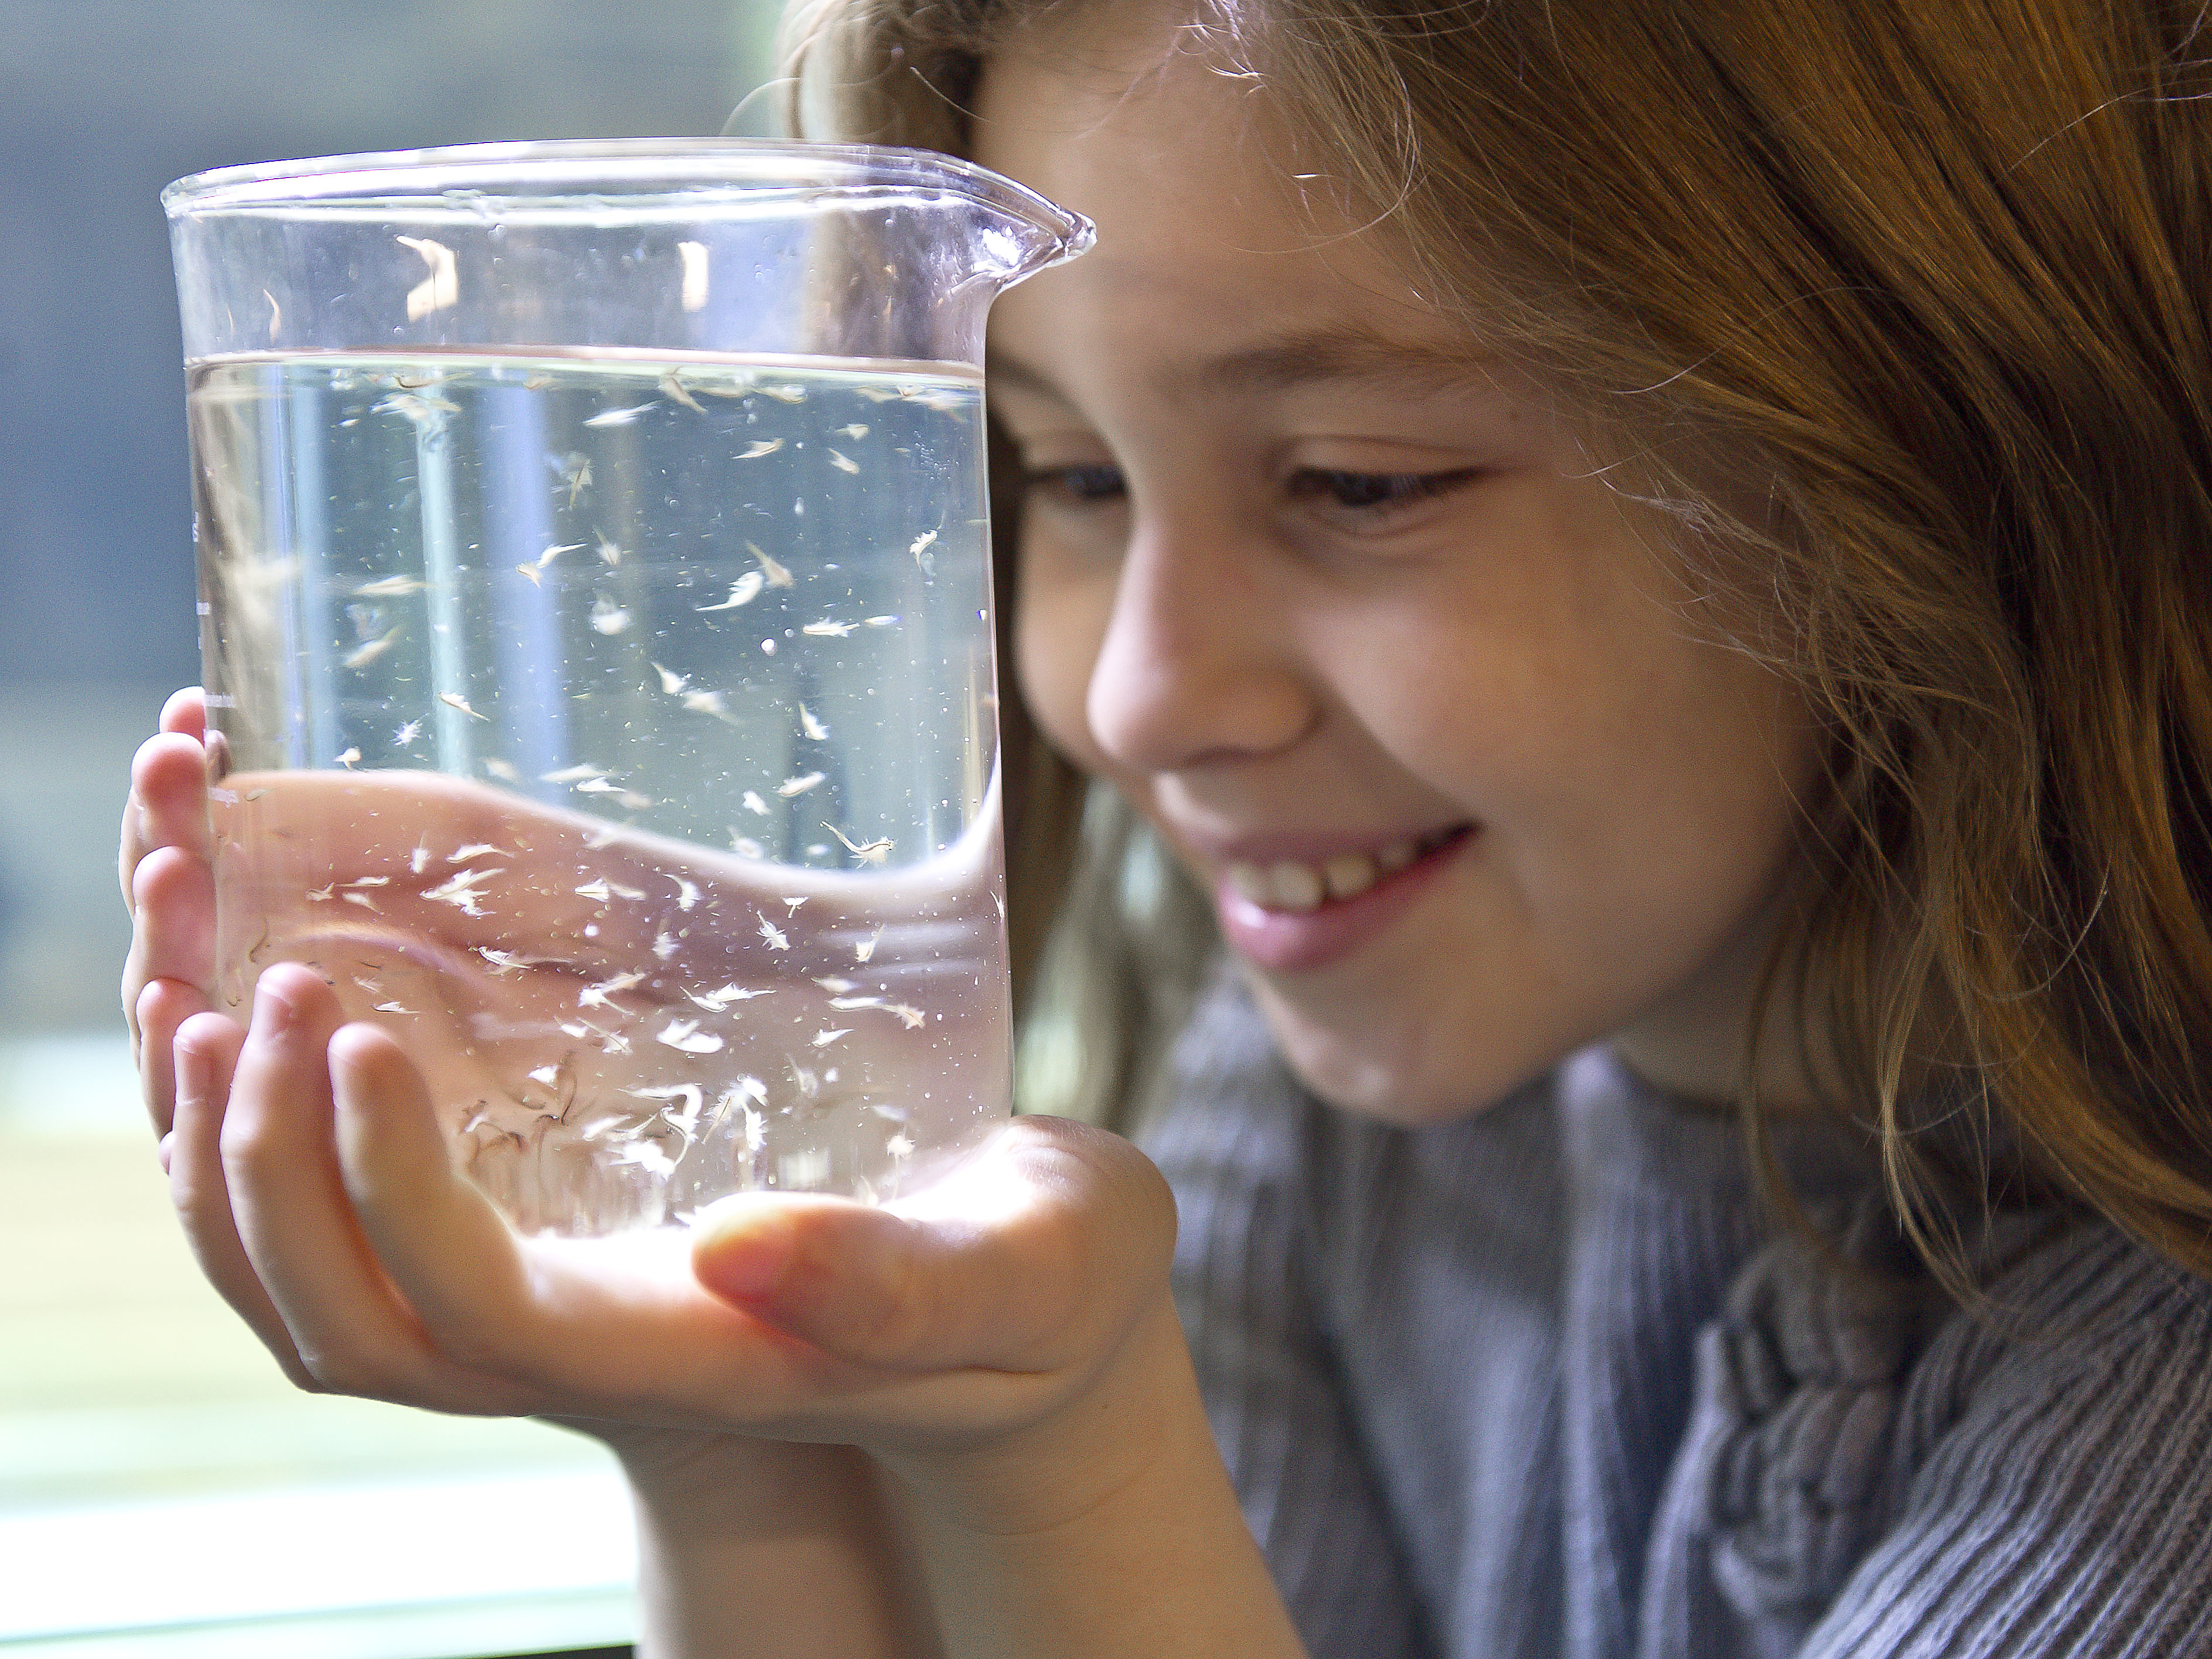 Sealife Schools Program Girlwatersample | SEA LIFE Aquarium